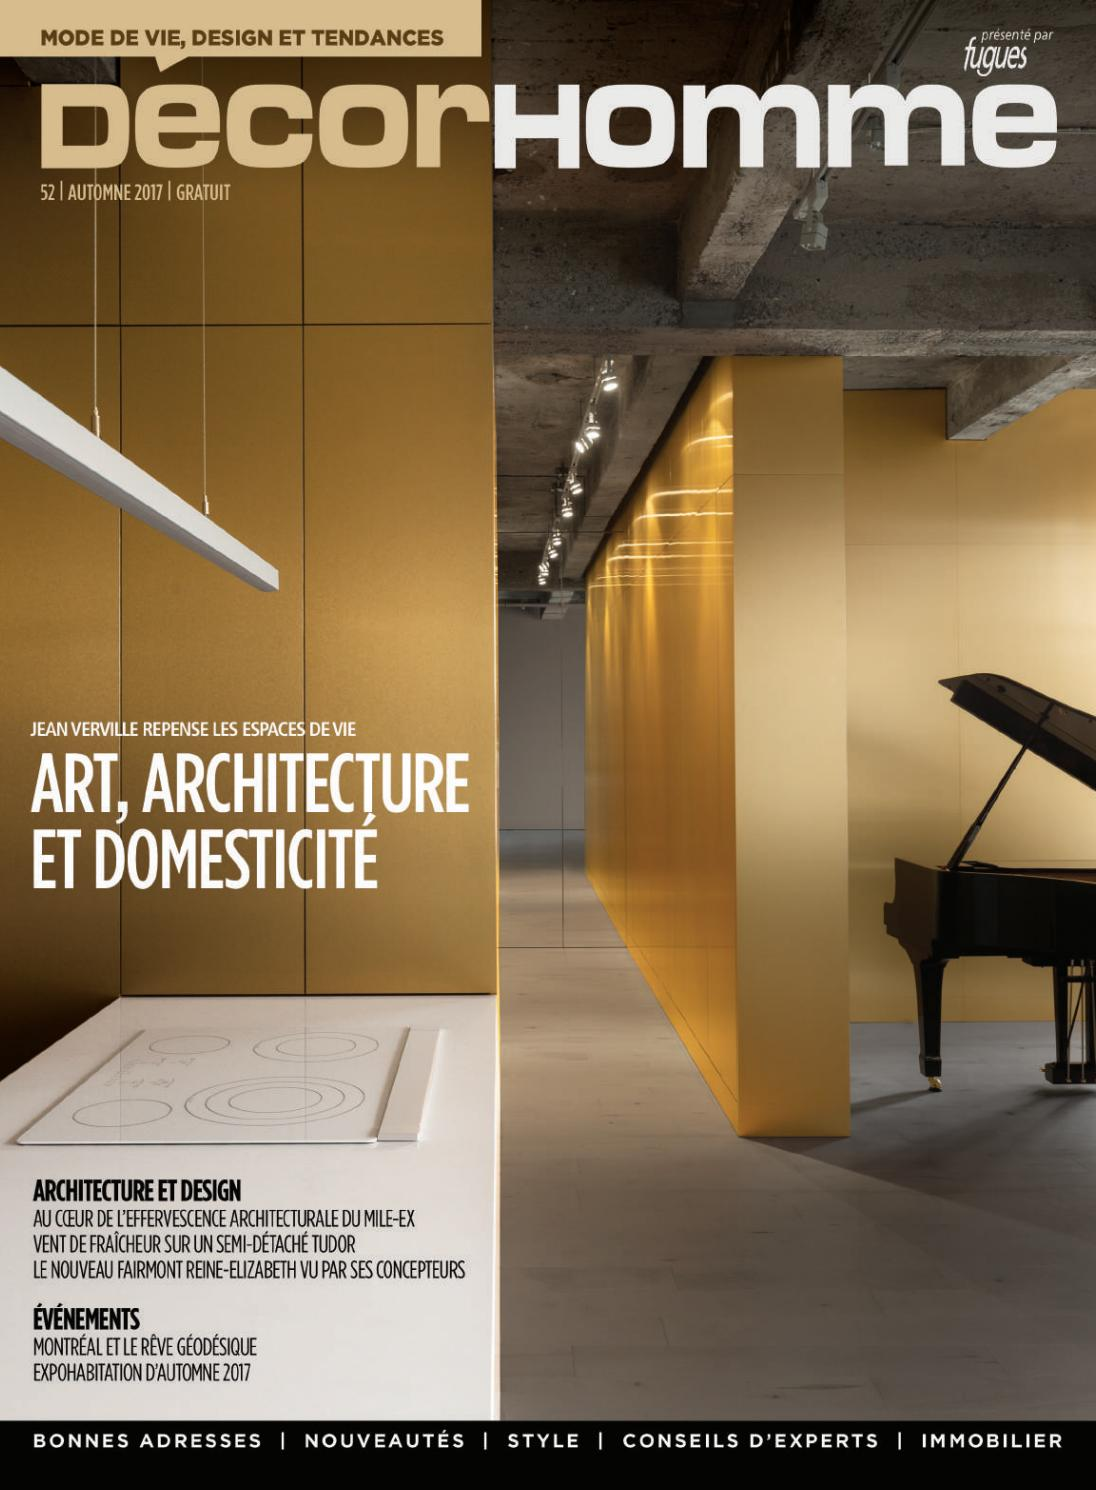 Decorhomme 52 By Fugues Décorhomme Guide Arc En Ciel Et Zip Le Groupe Hom Issuu